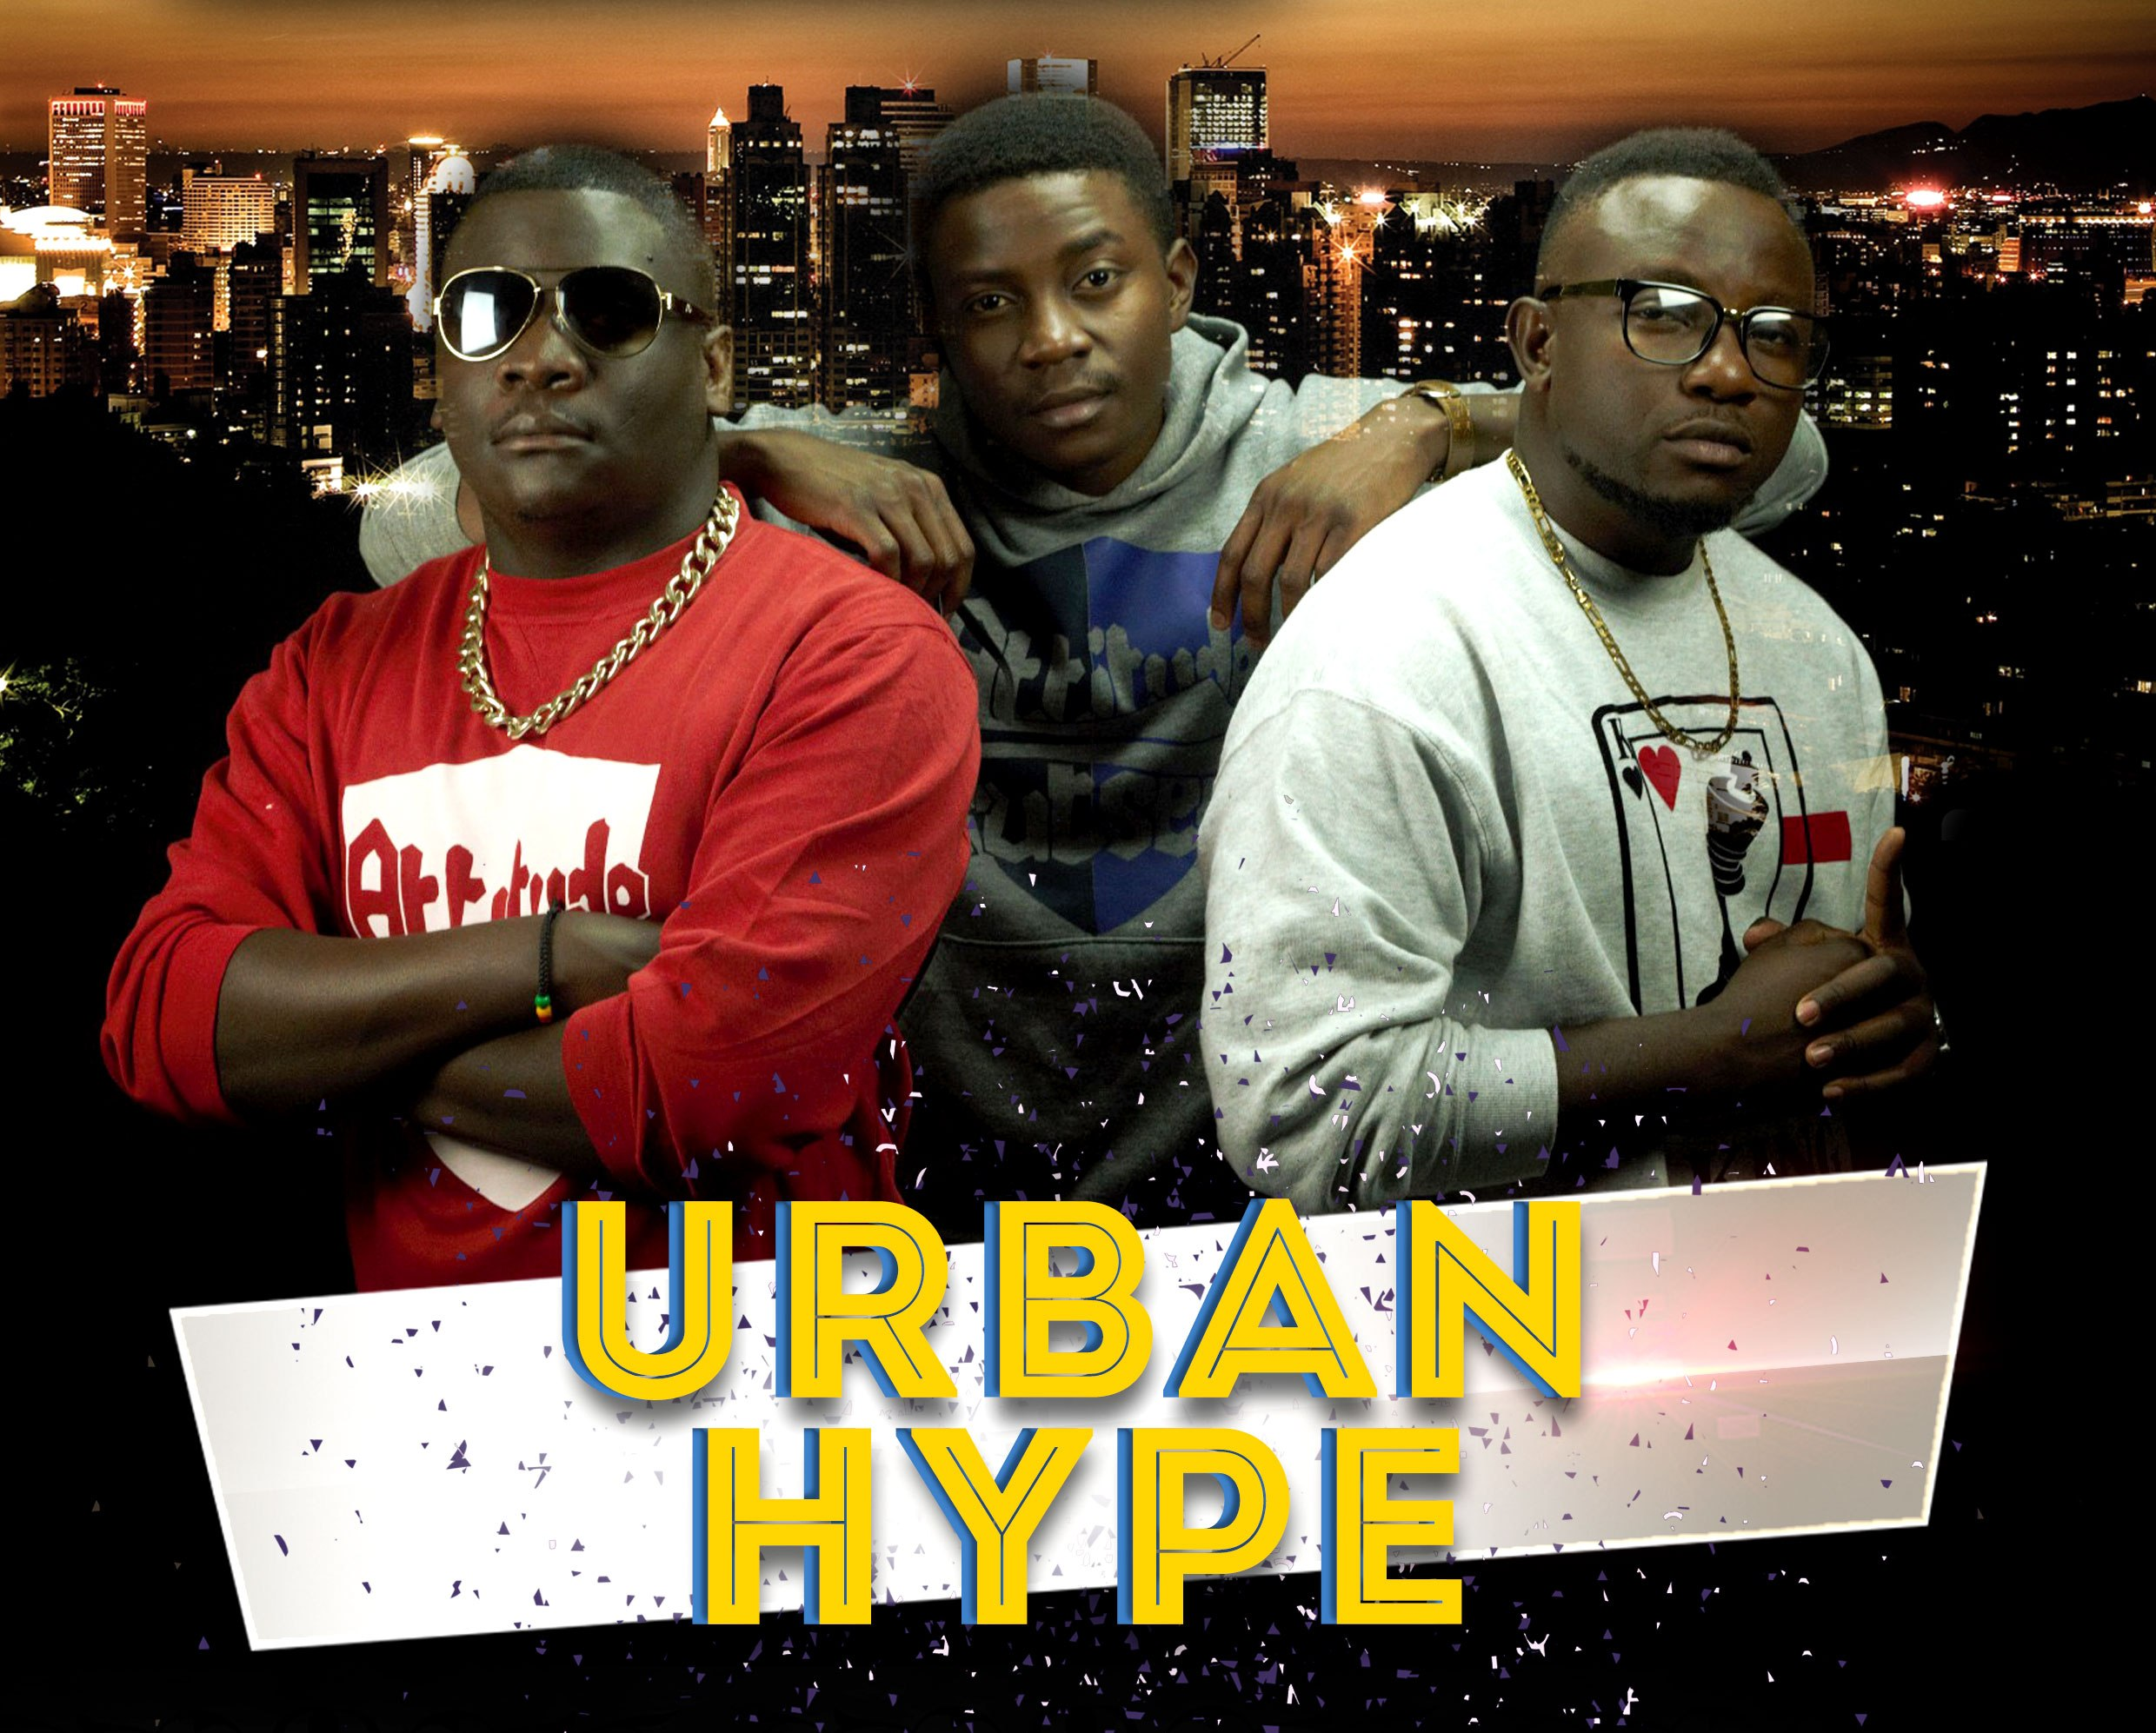 Urban hype touch and go song download